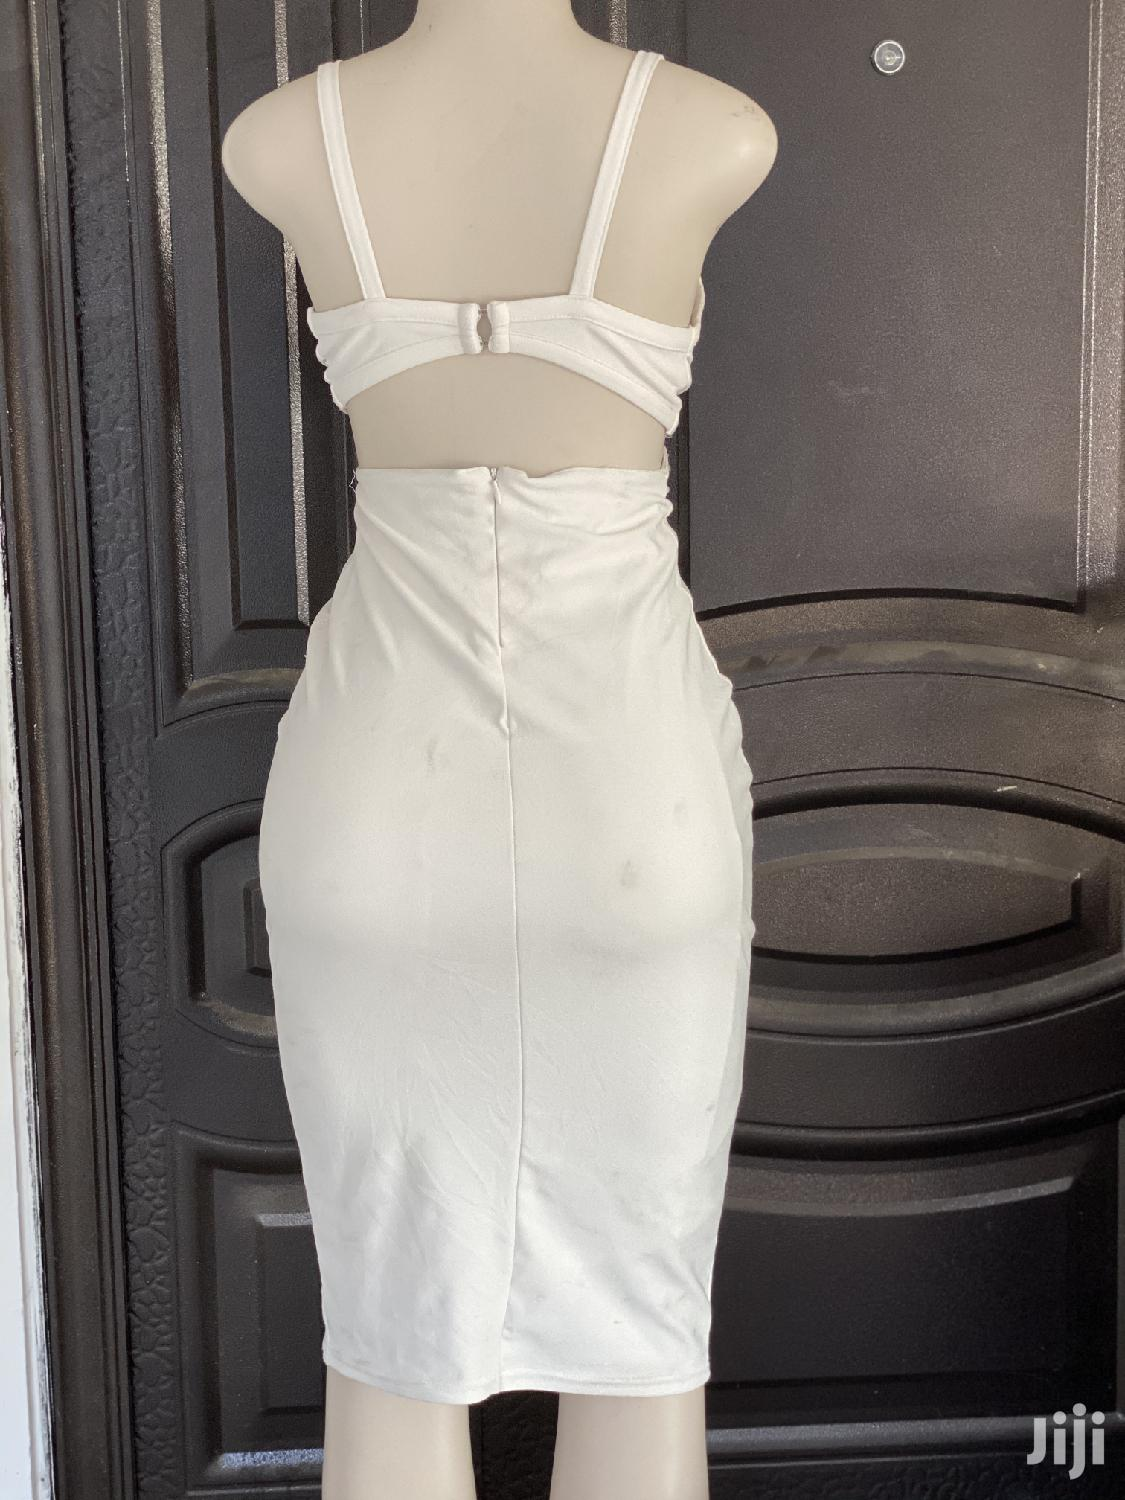 Dress Available   Clothing for sale in Accra Metropolitan, Greater Accra, Ghana